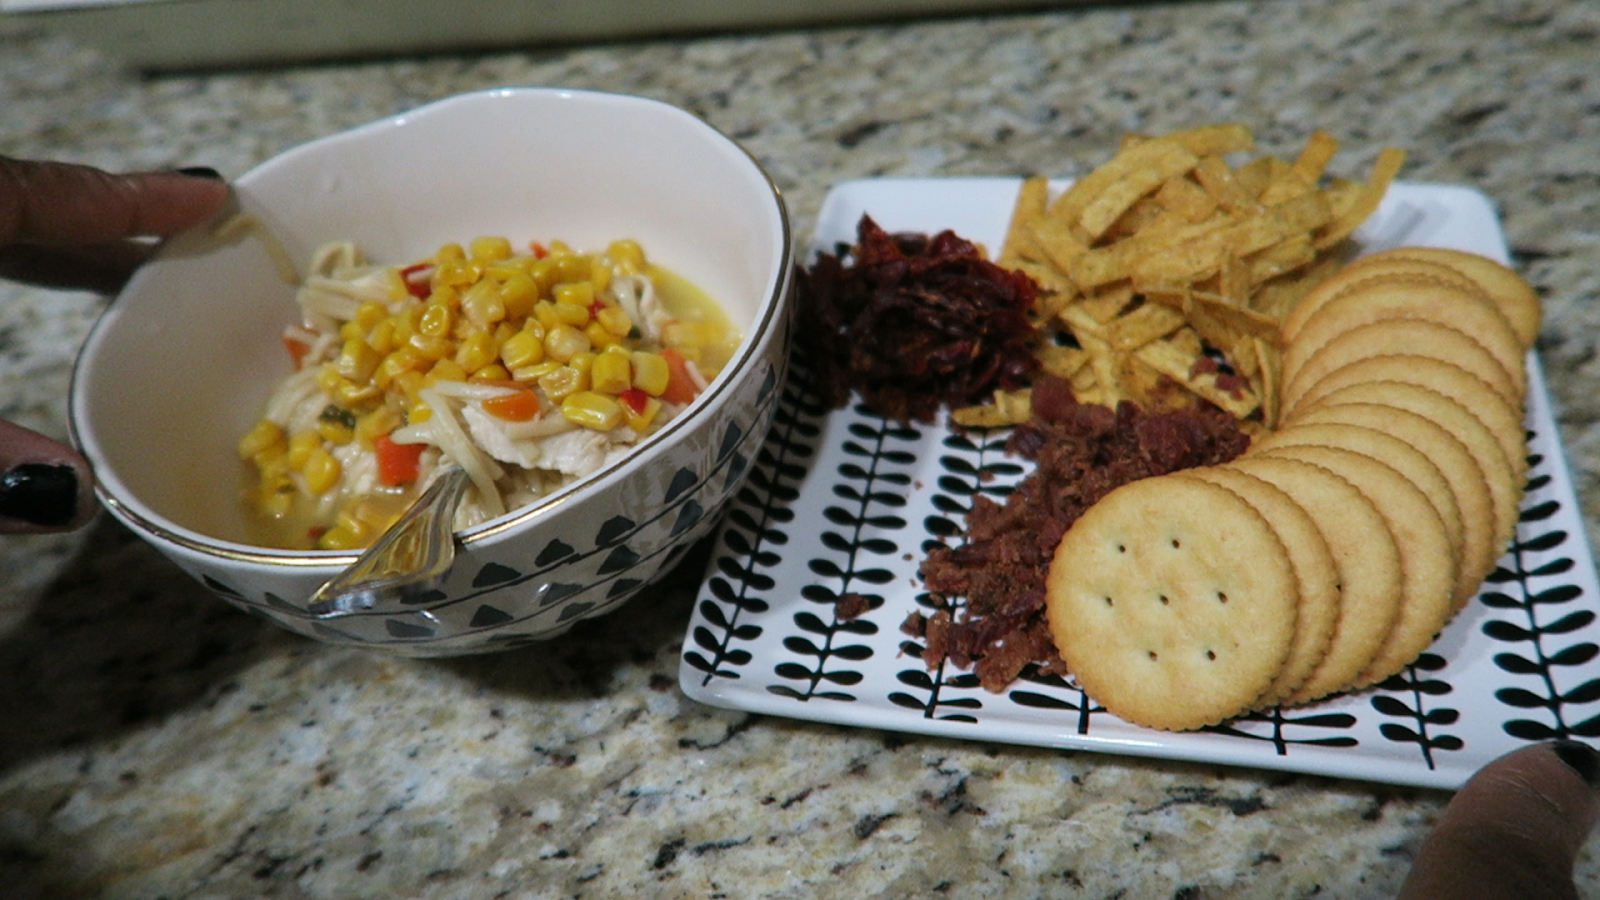 Image: soup in bowl, dried tomatoes on plate,crackers,chips and bacon bits on saucer for home soup shown on bits and babbles blog